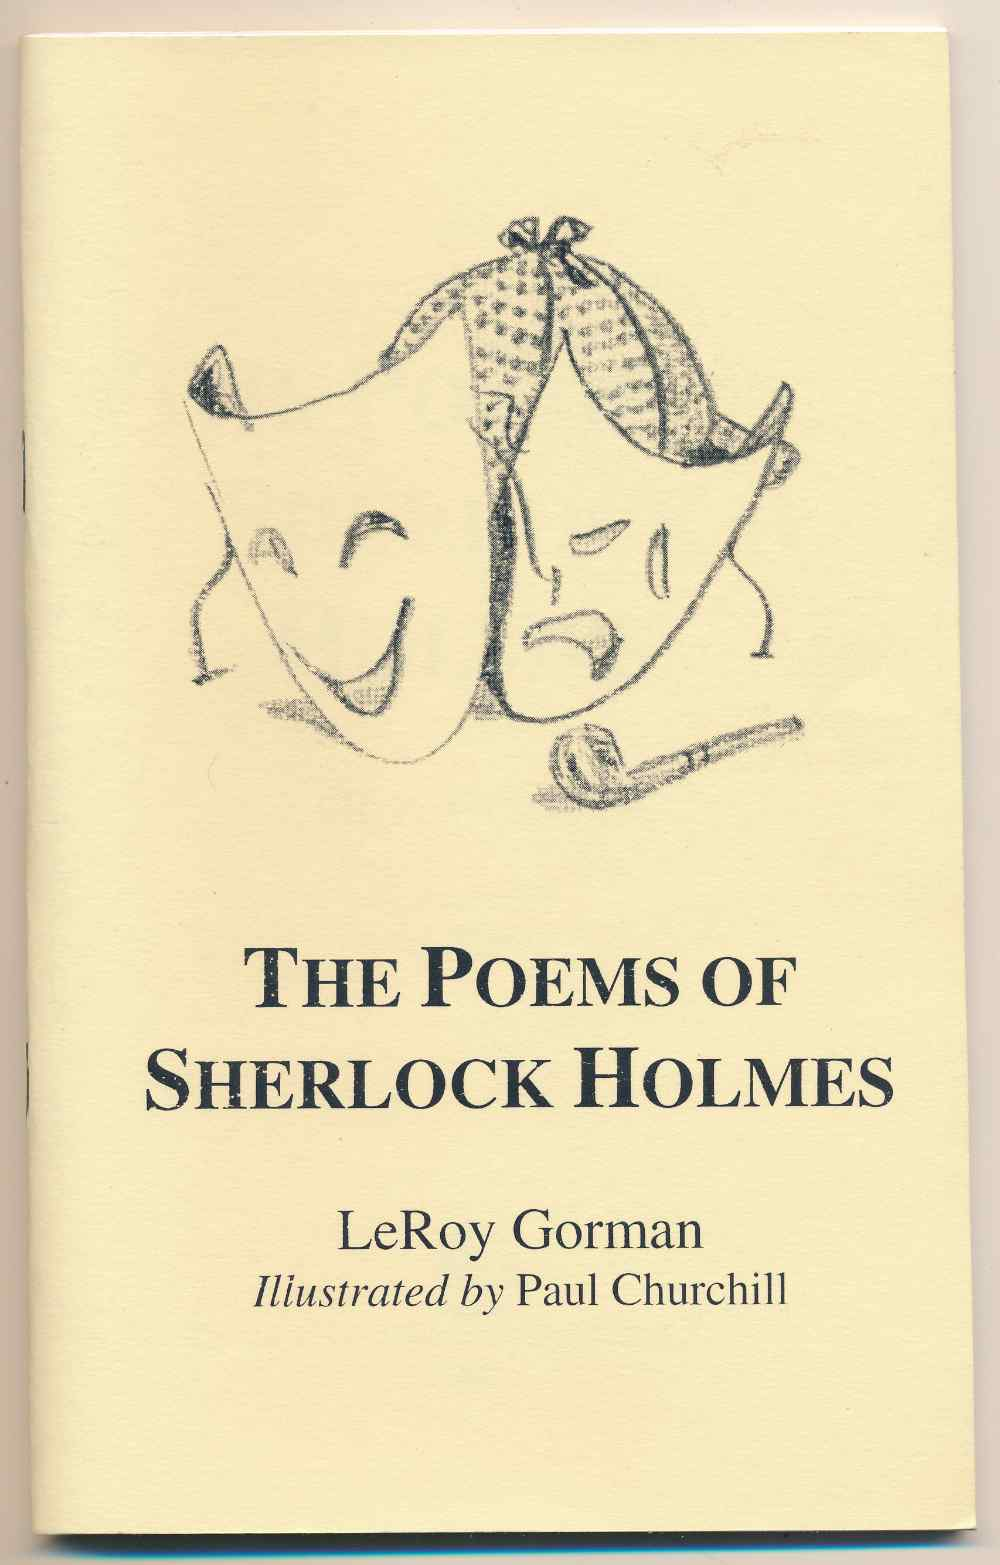 The poems of Sherlock Holmes